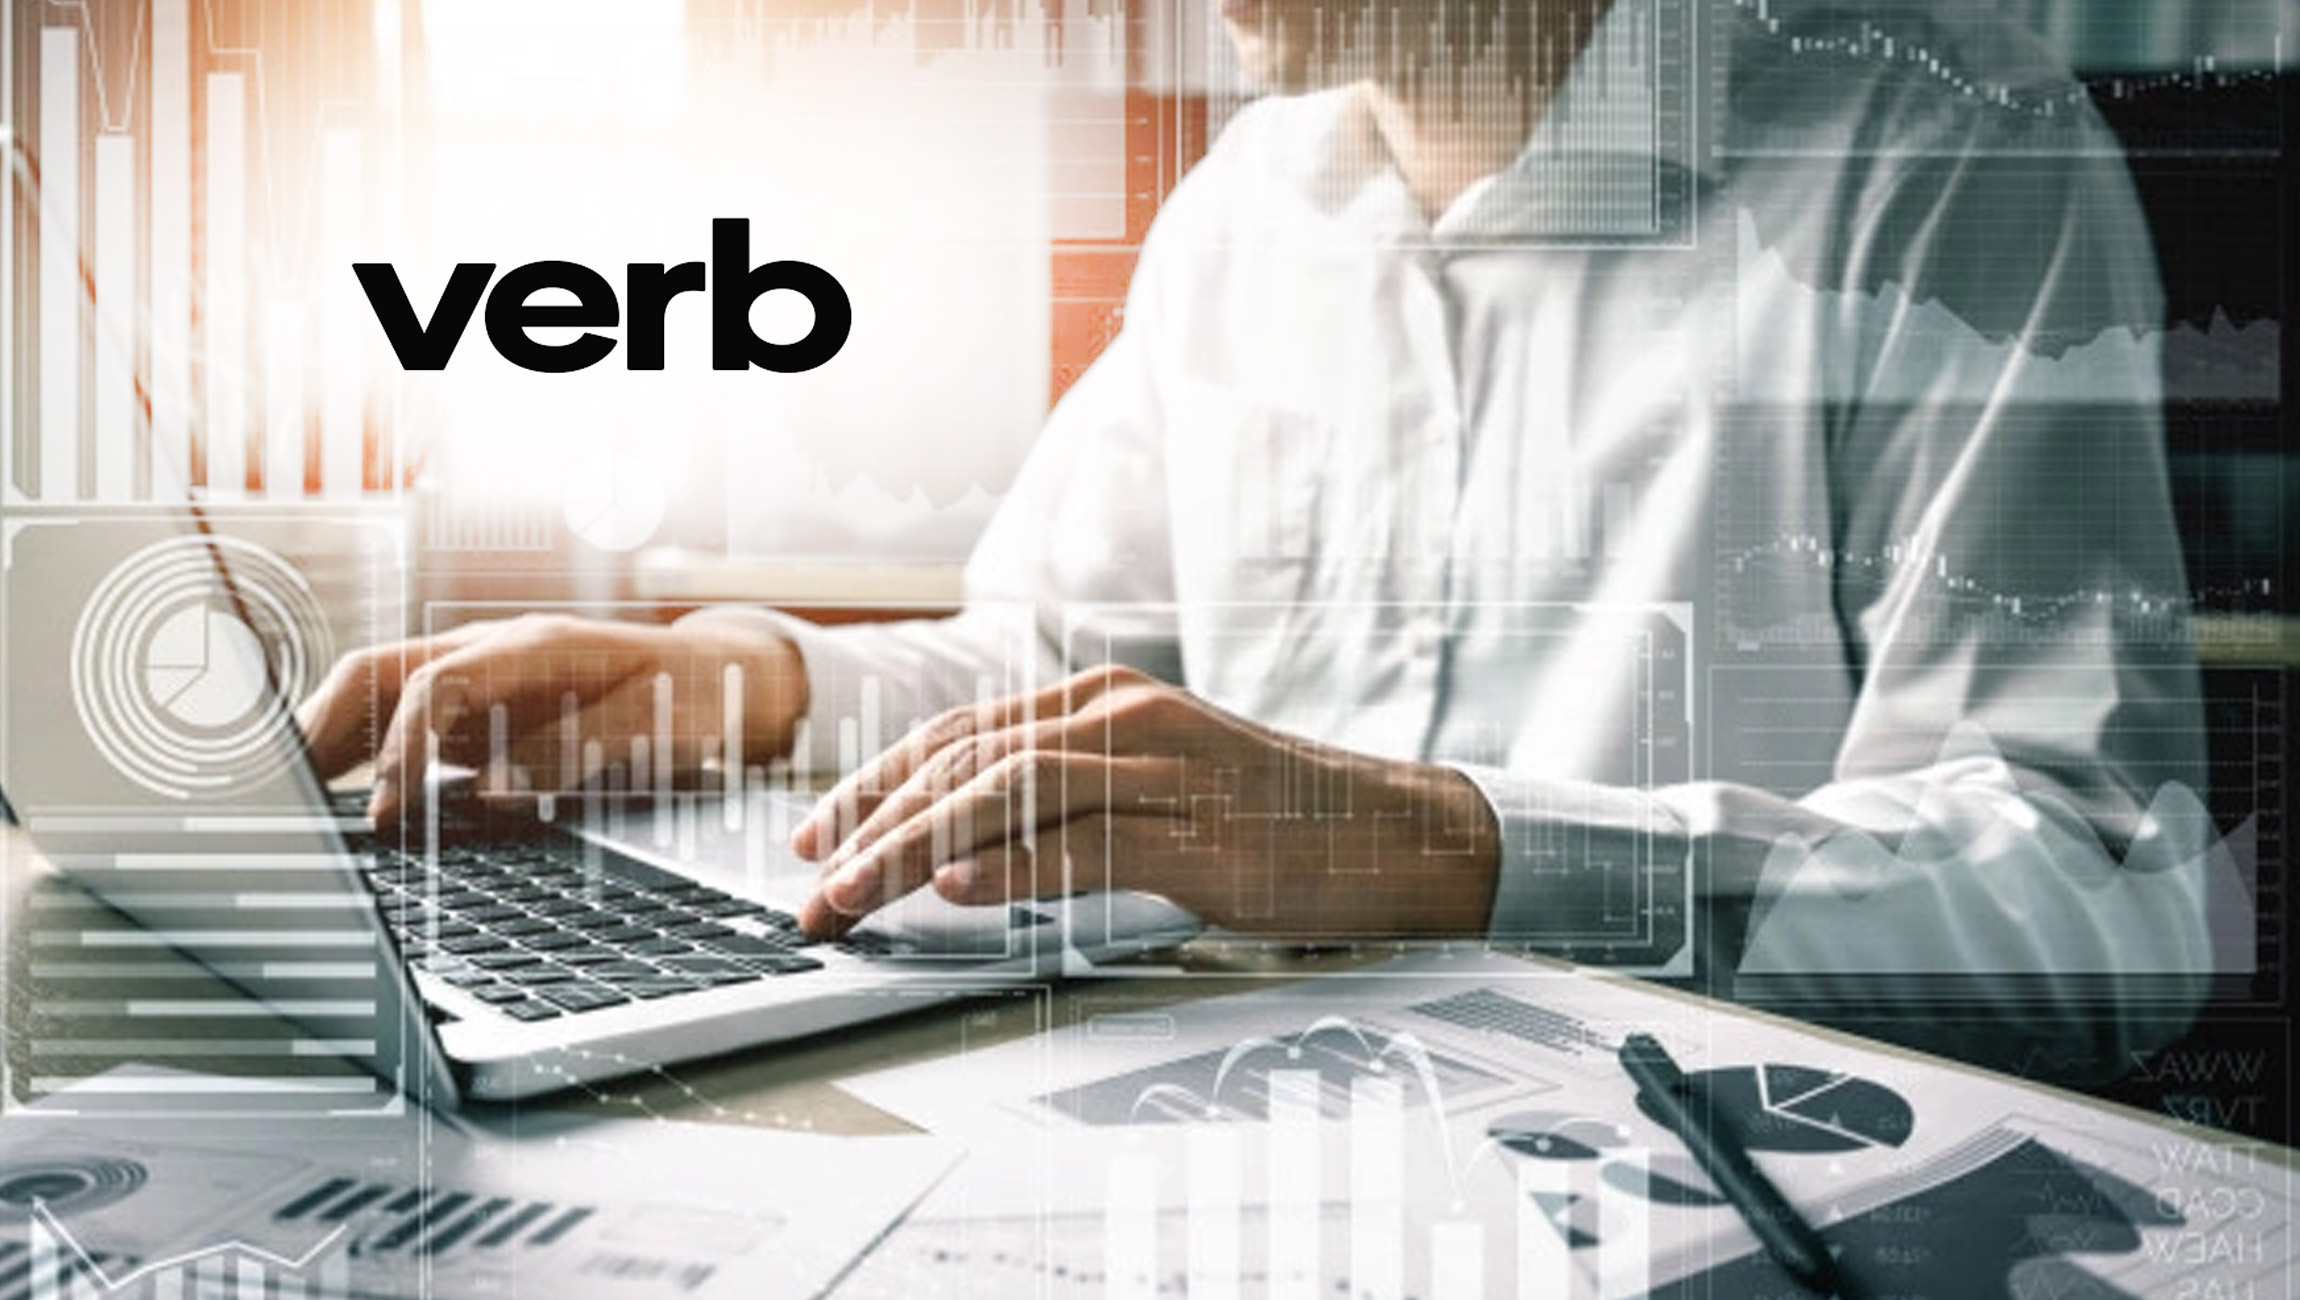 VERB-Continues-SaaS-Recurring-Revenue-Growth-Year-Over-Year-and-Quarter-Over-Quarter-in-Q2-2021-Filing